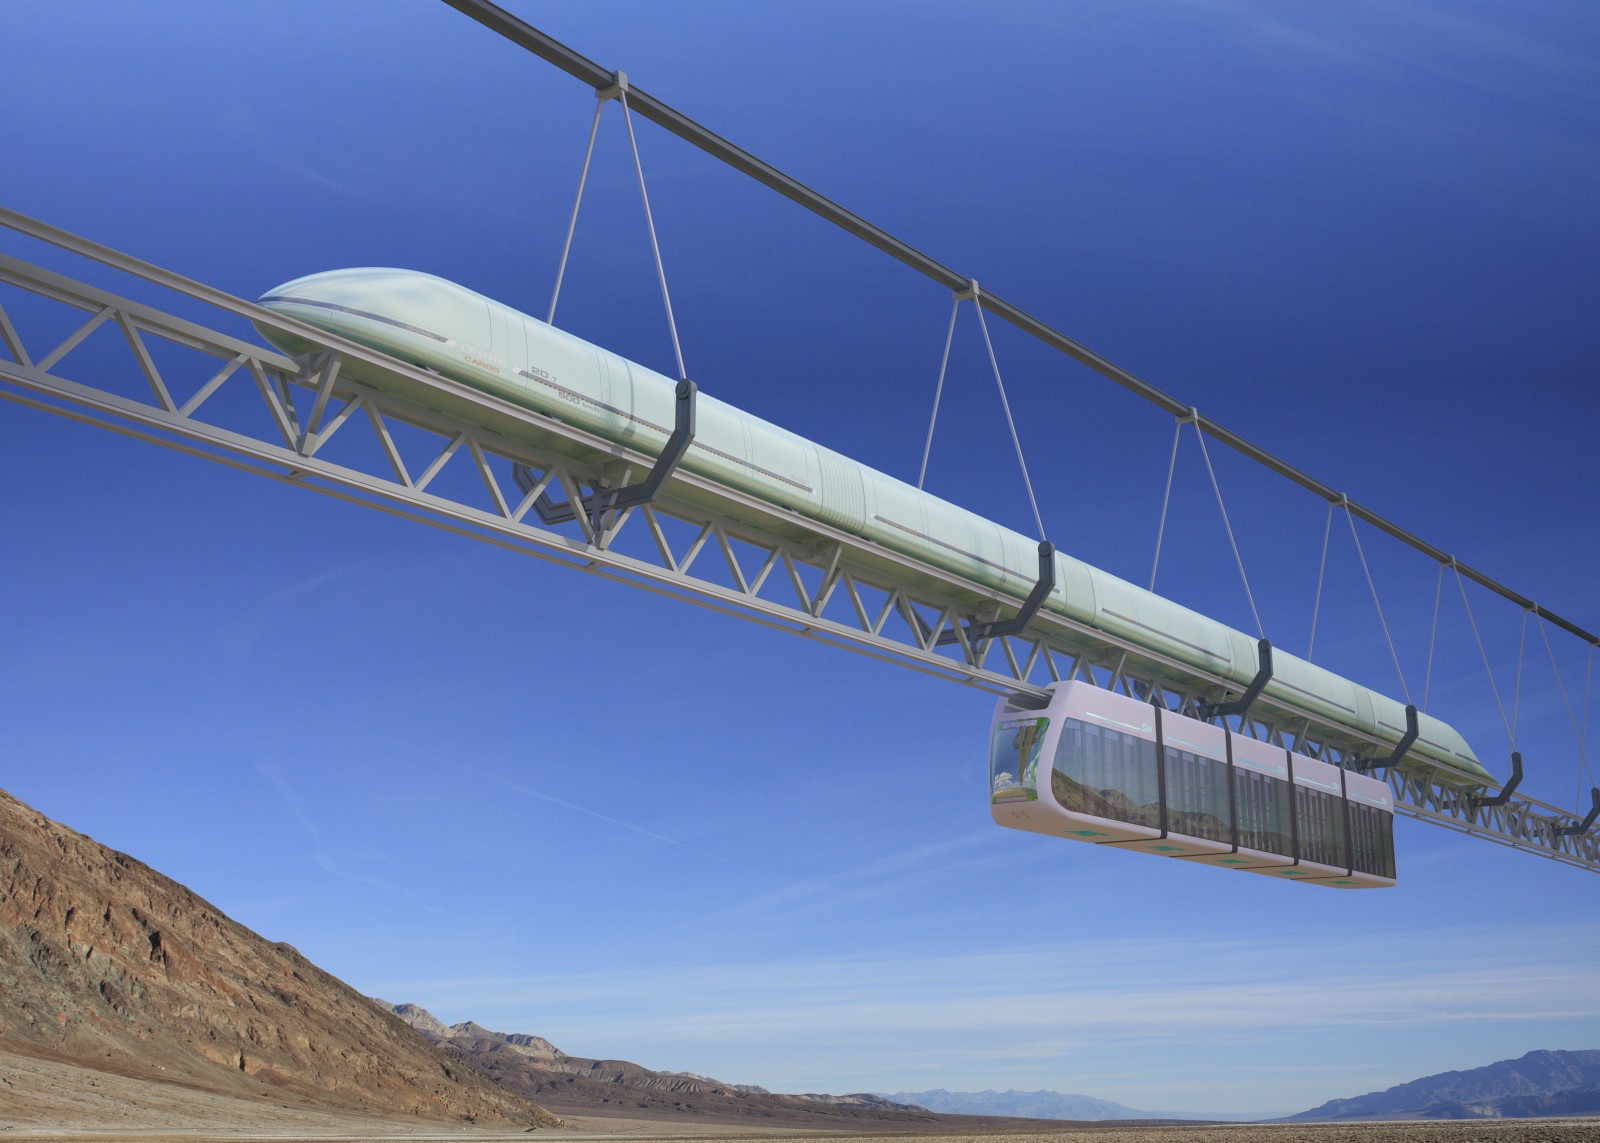 SkyWay in Australia: Differences from a Monorail